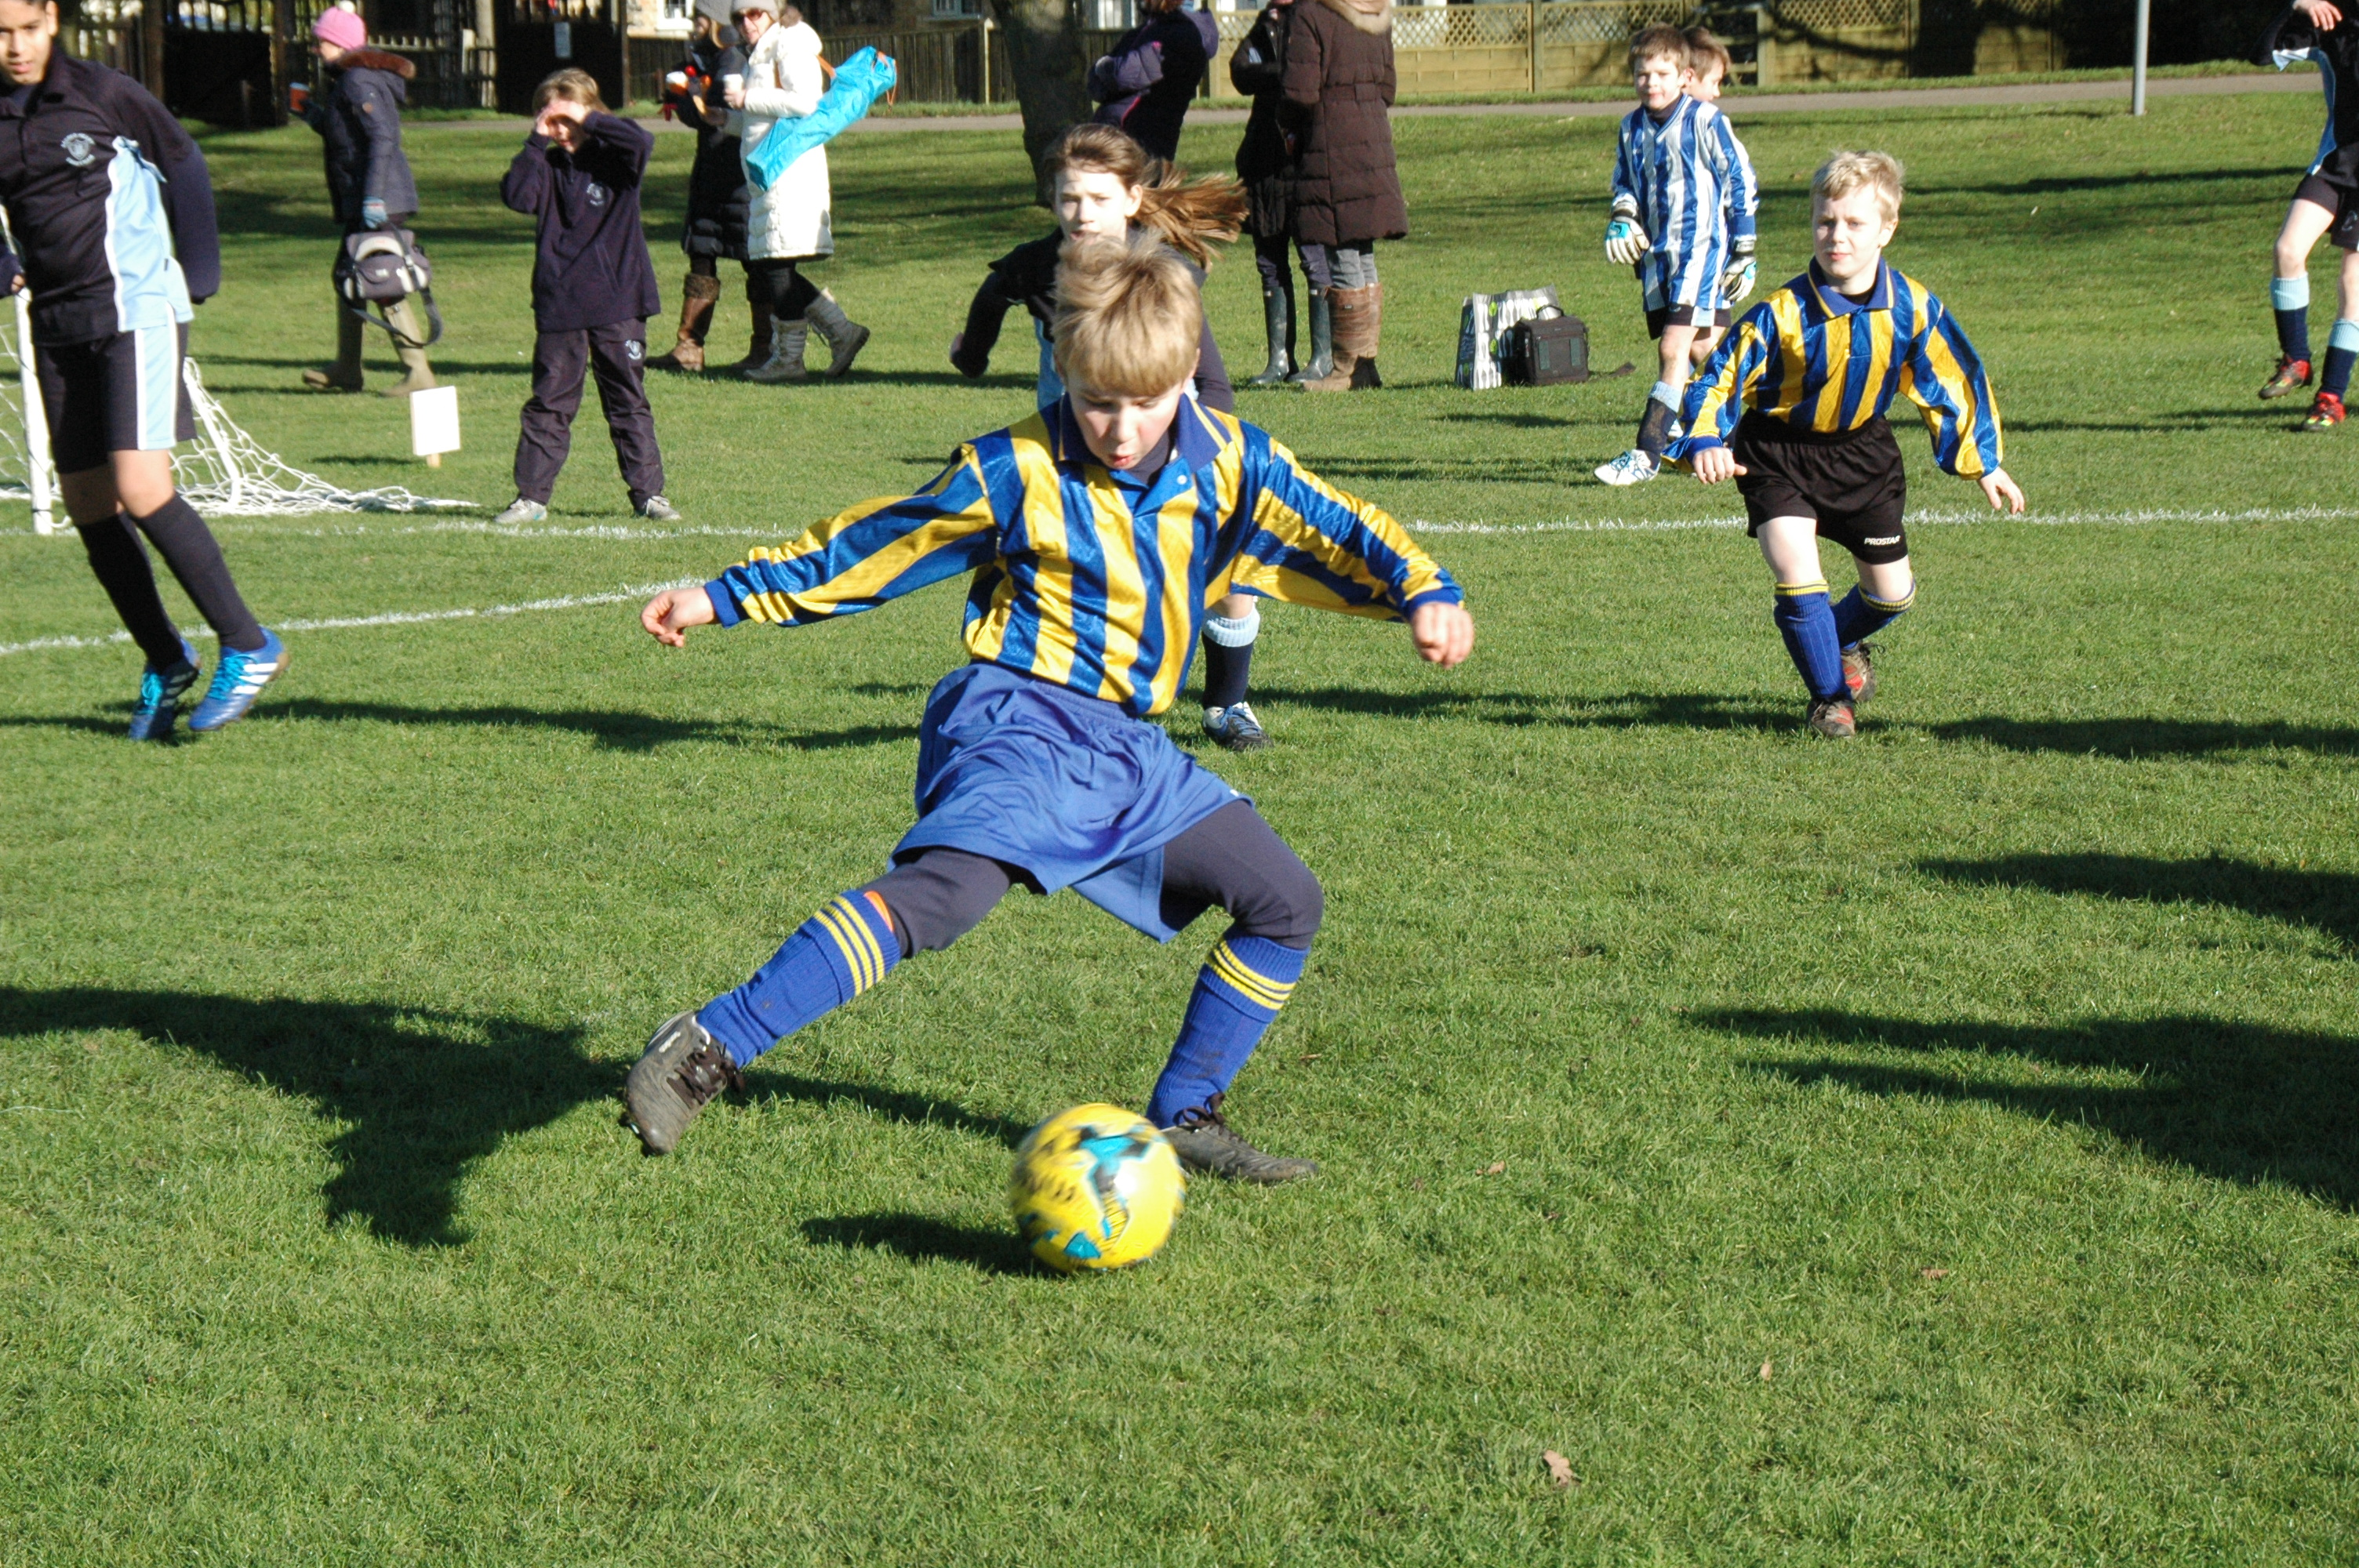 football-private-school-cambridge-www.whitehallschool.com